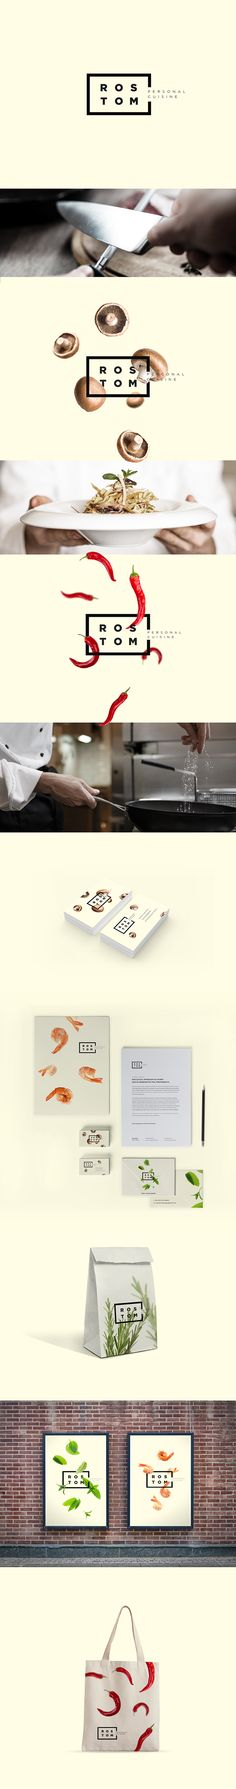 Rostom - Personal Cuisine on Behance by  Marcelo Nê love this packaging branding PD